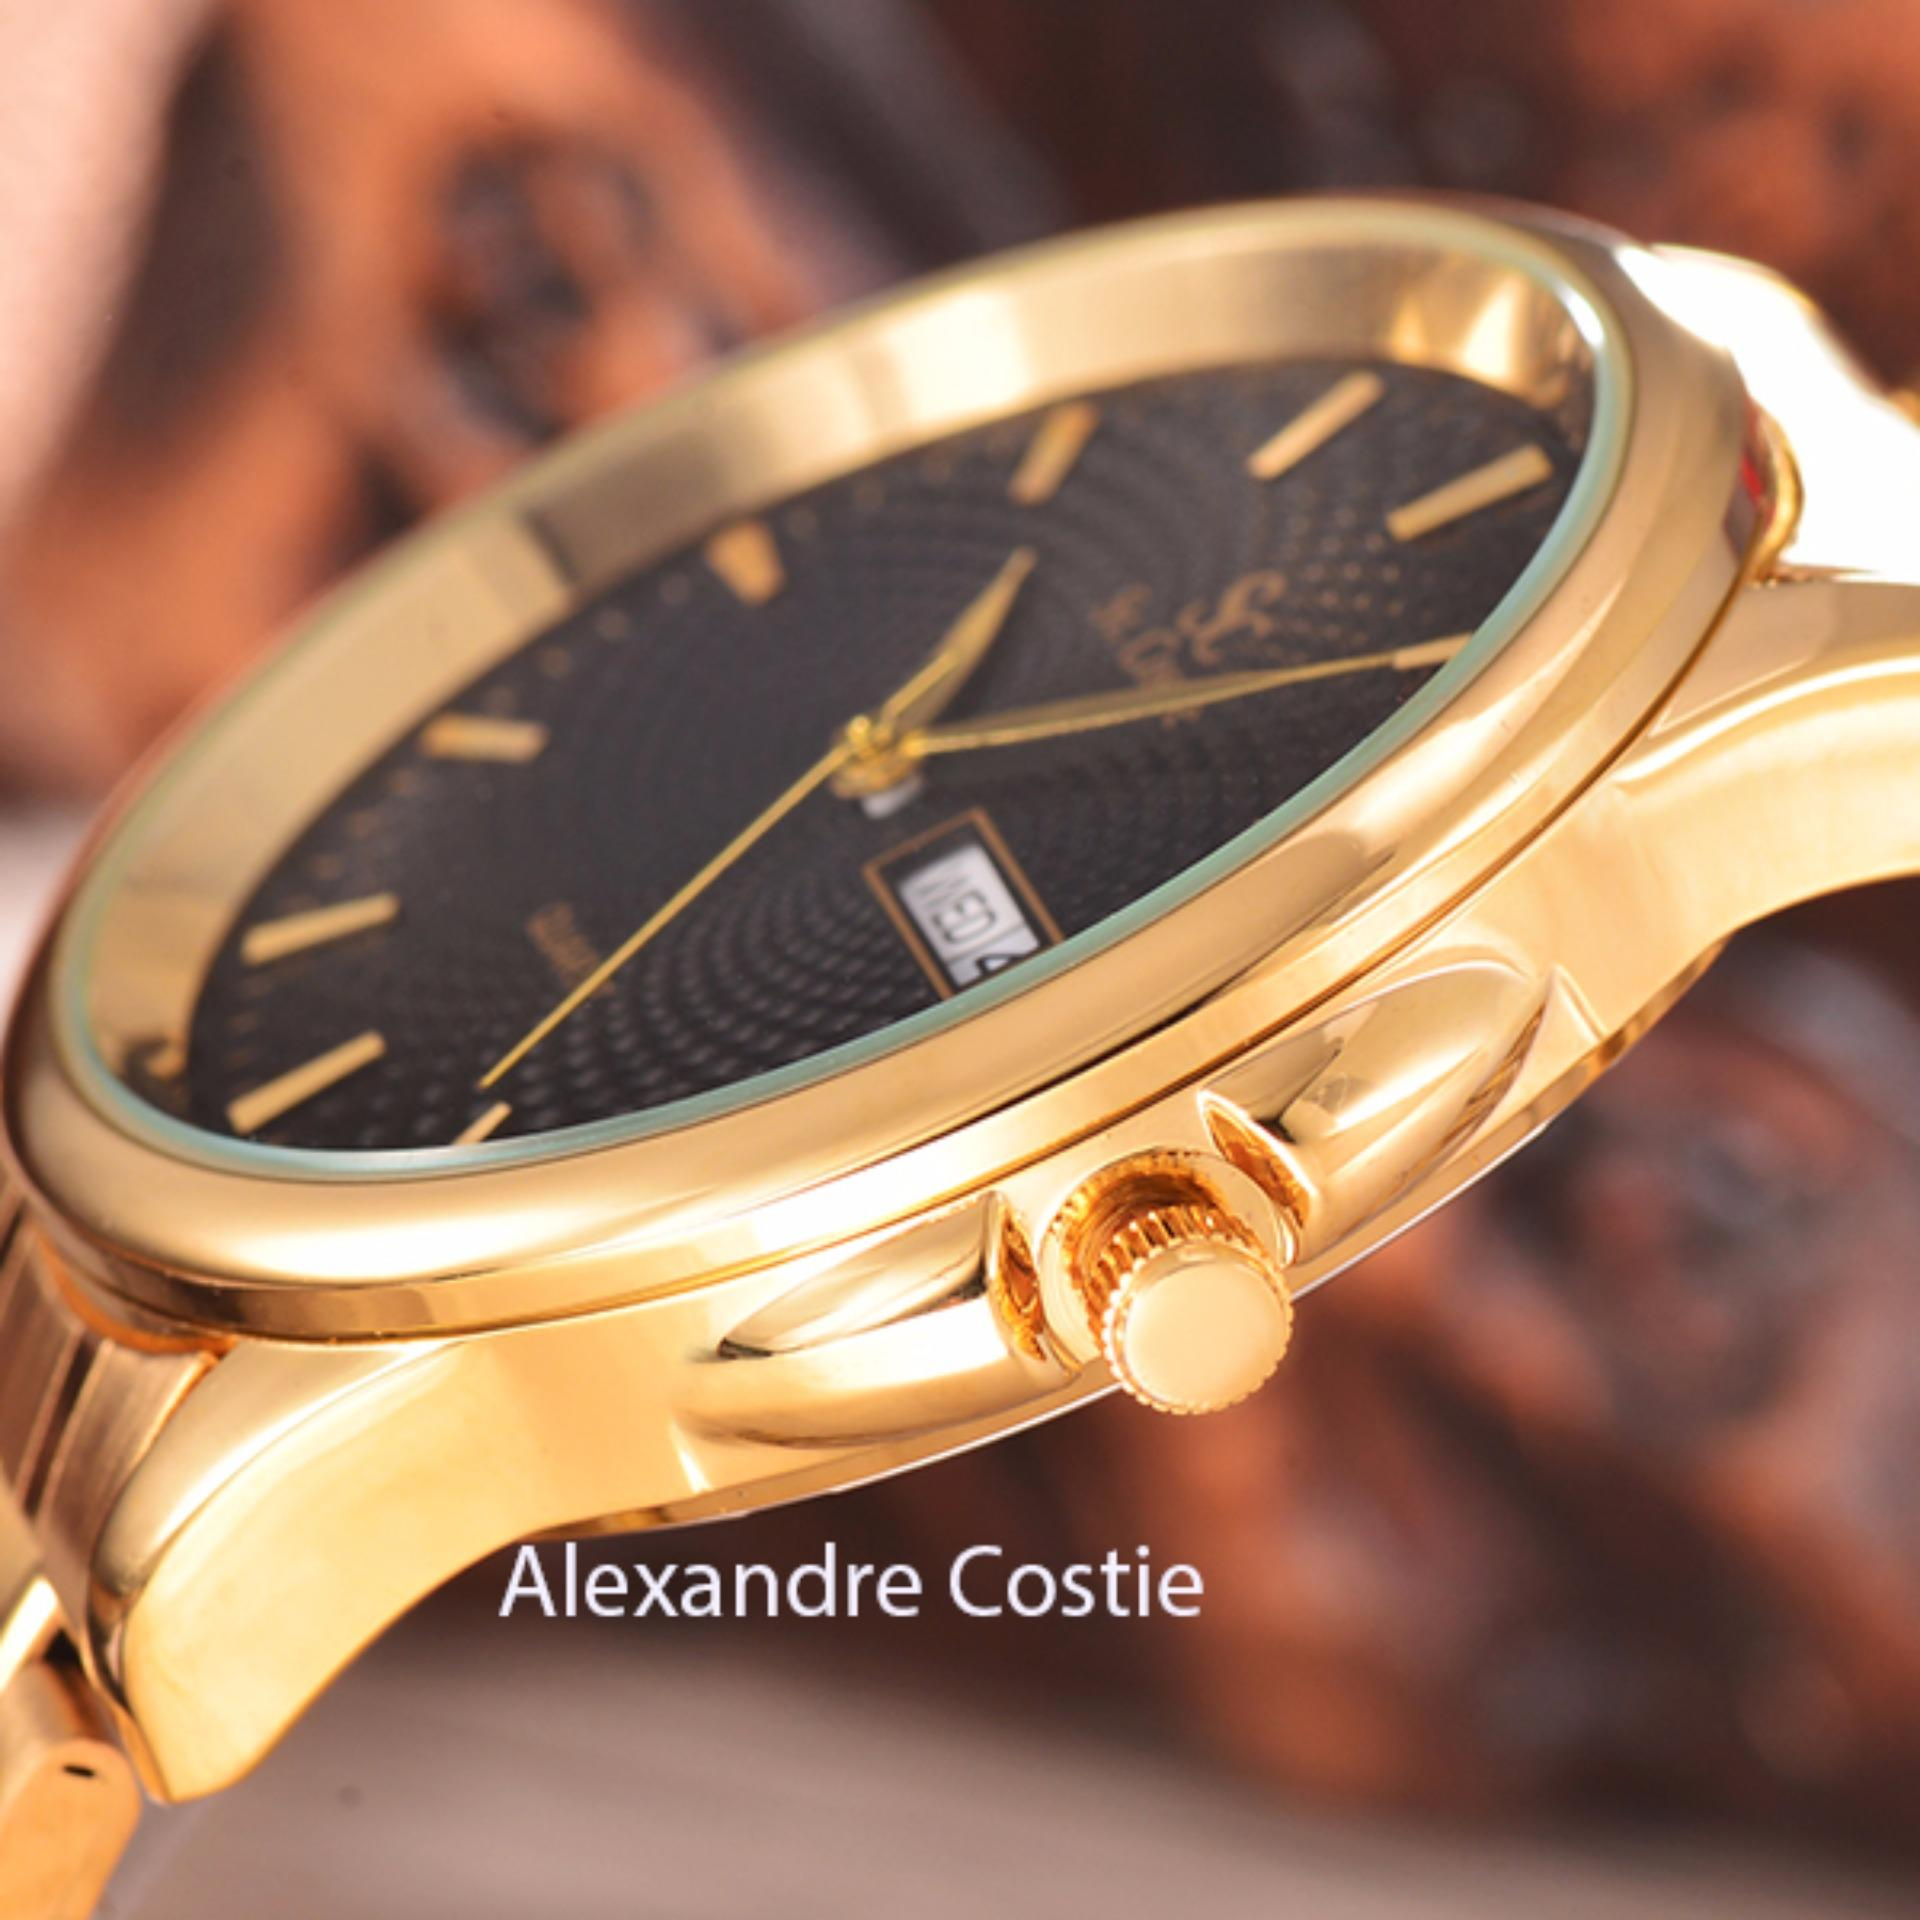 ... silver gold gold dial stainless stell band. Source · Saint Costie Original Brand, Jam Tangan Pria - Body Gold - Black .